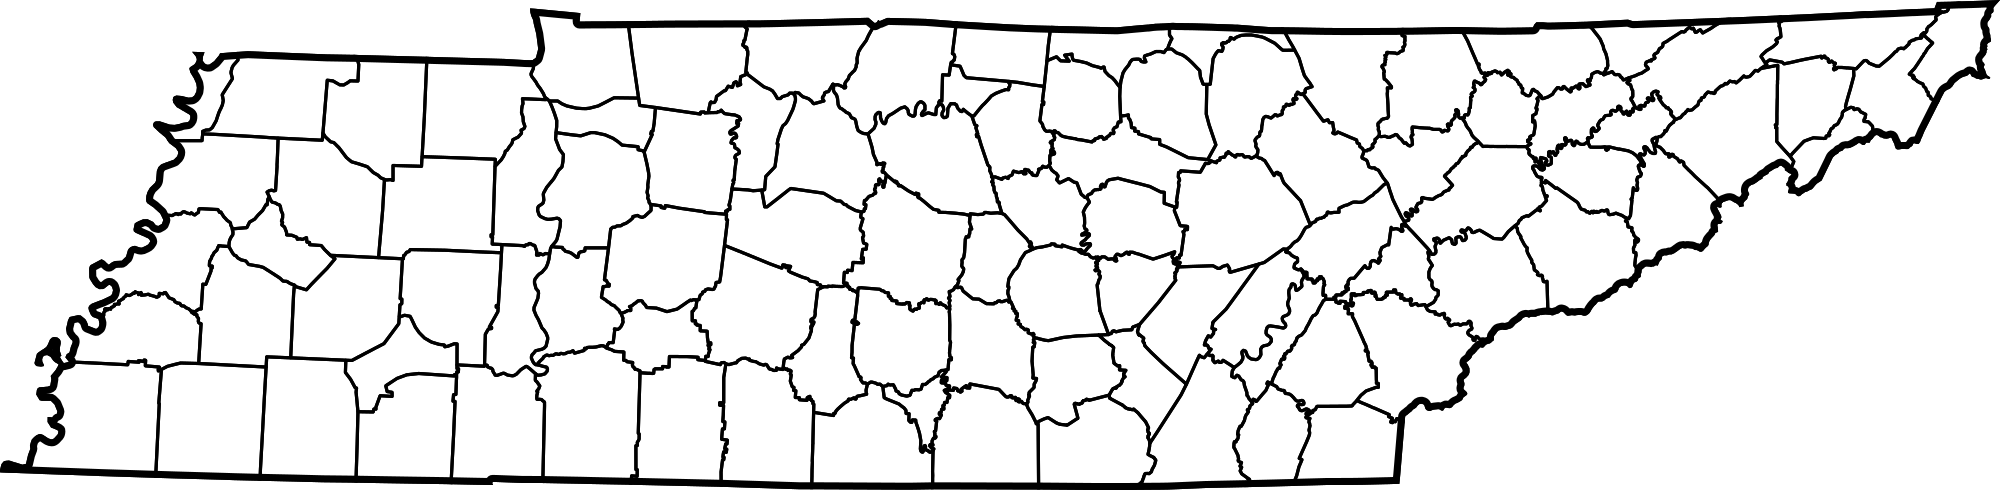 FileTennessee County Locator Map  Blankpng  Wikimedia